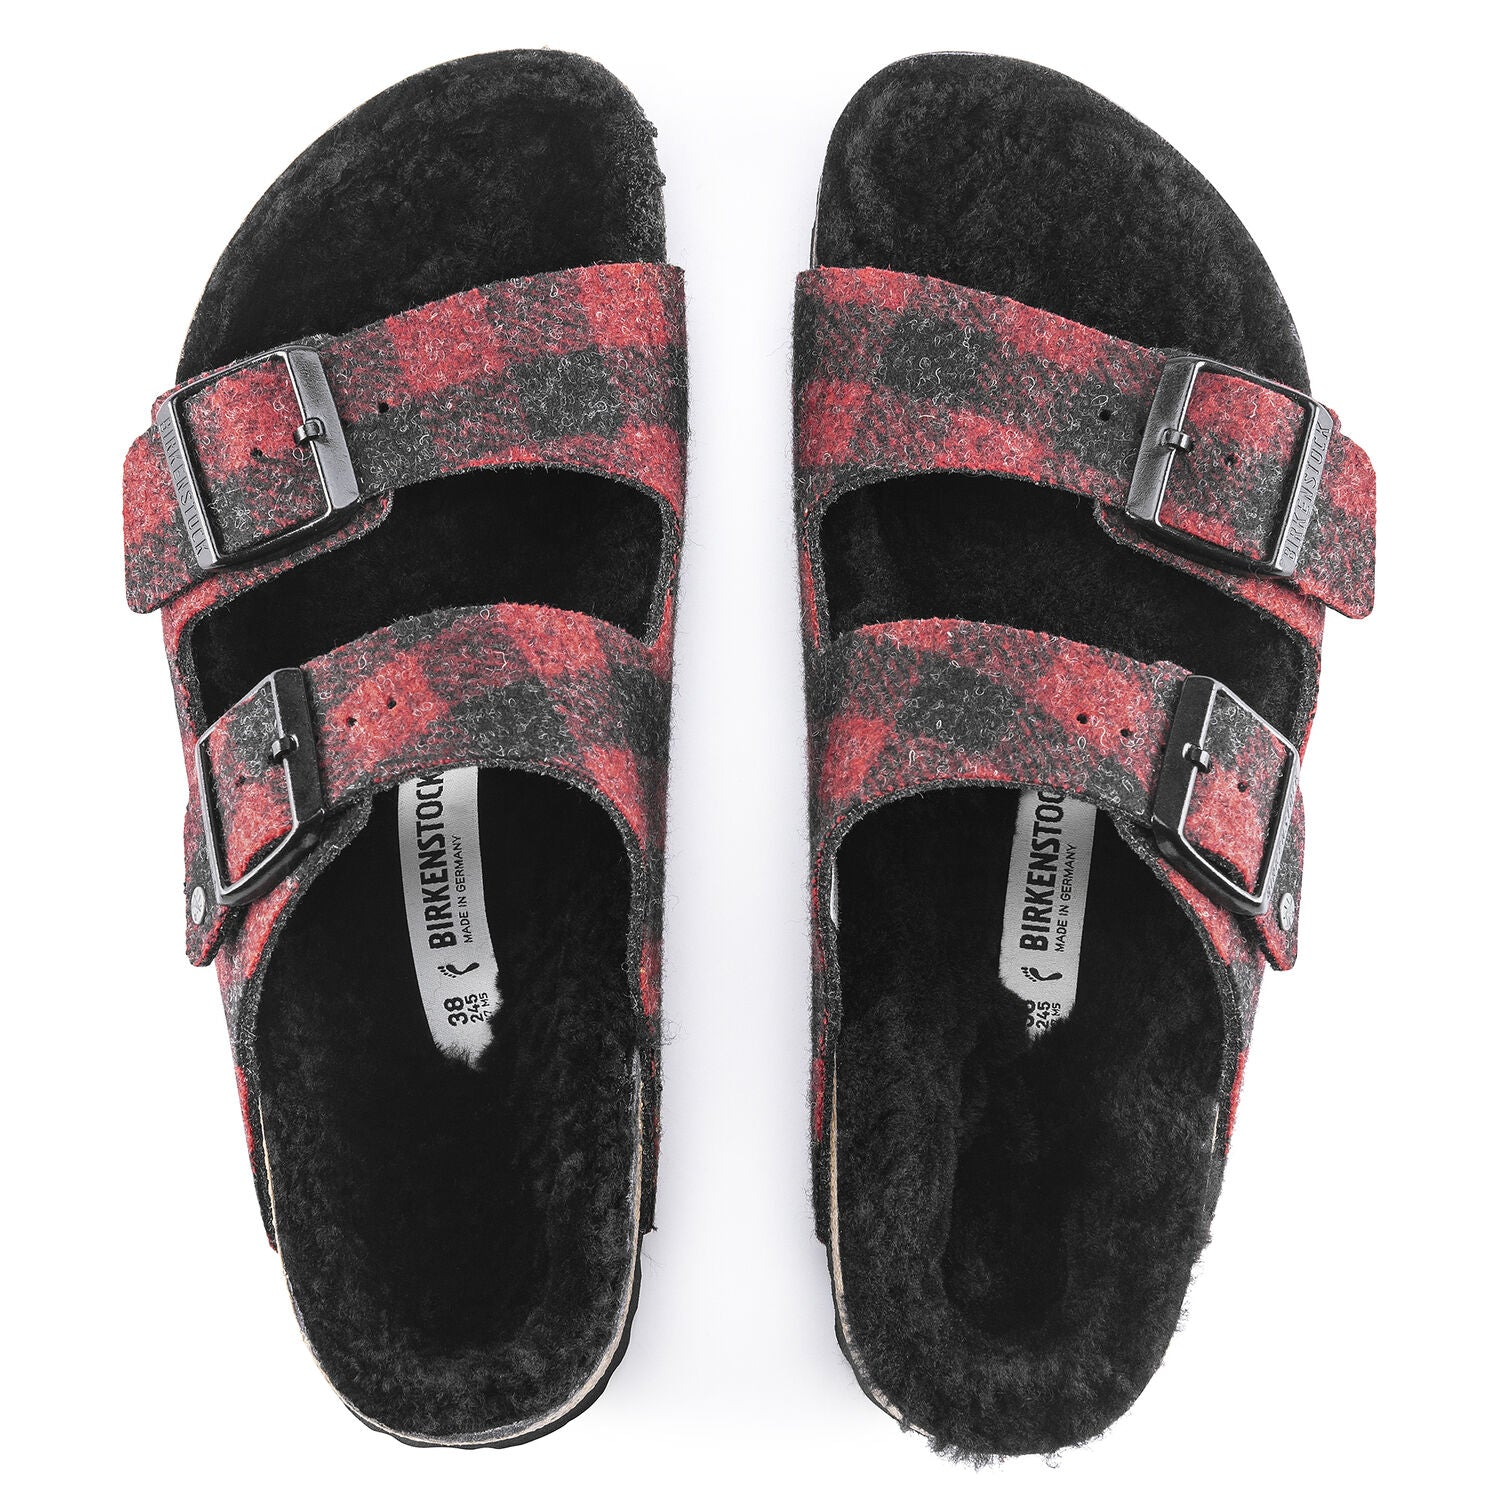 Arizona Shearling Wool Sandal - Red Plaid